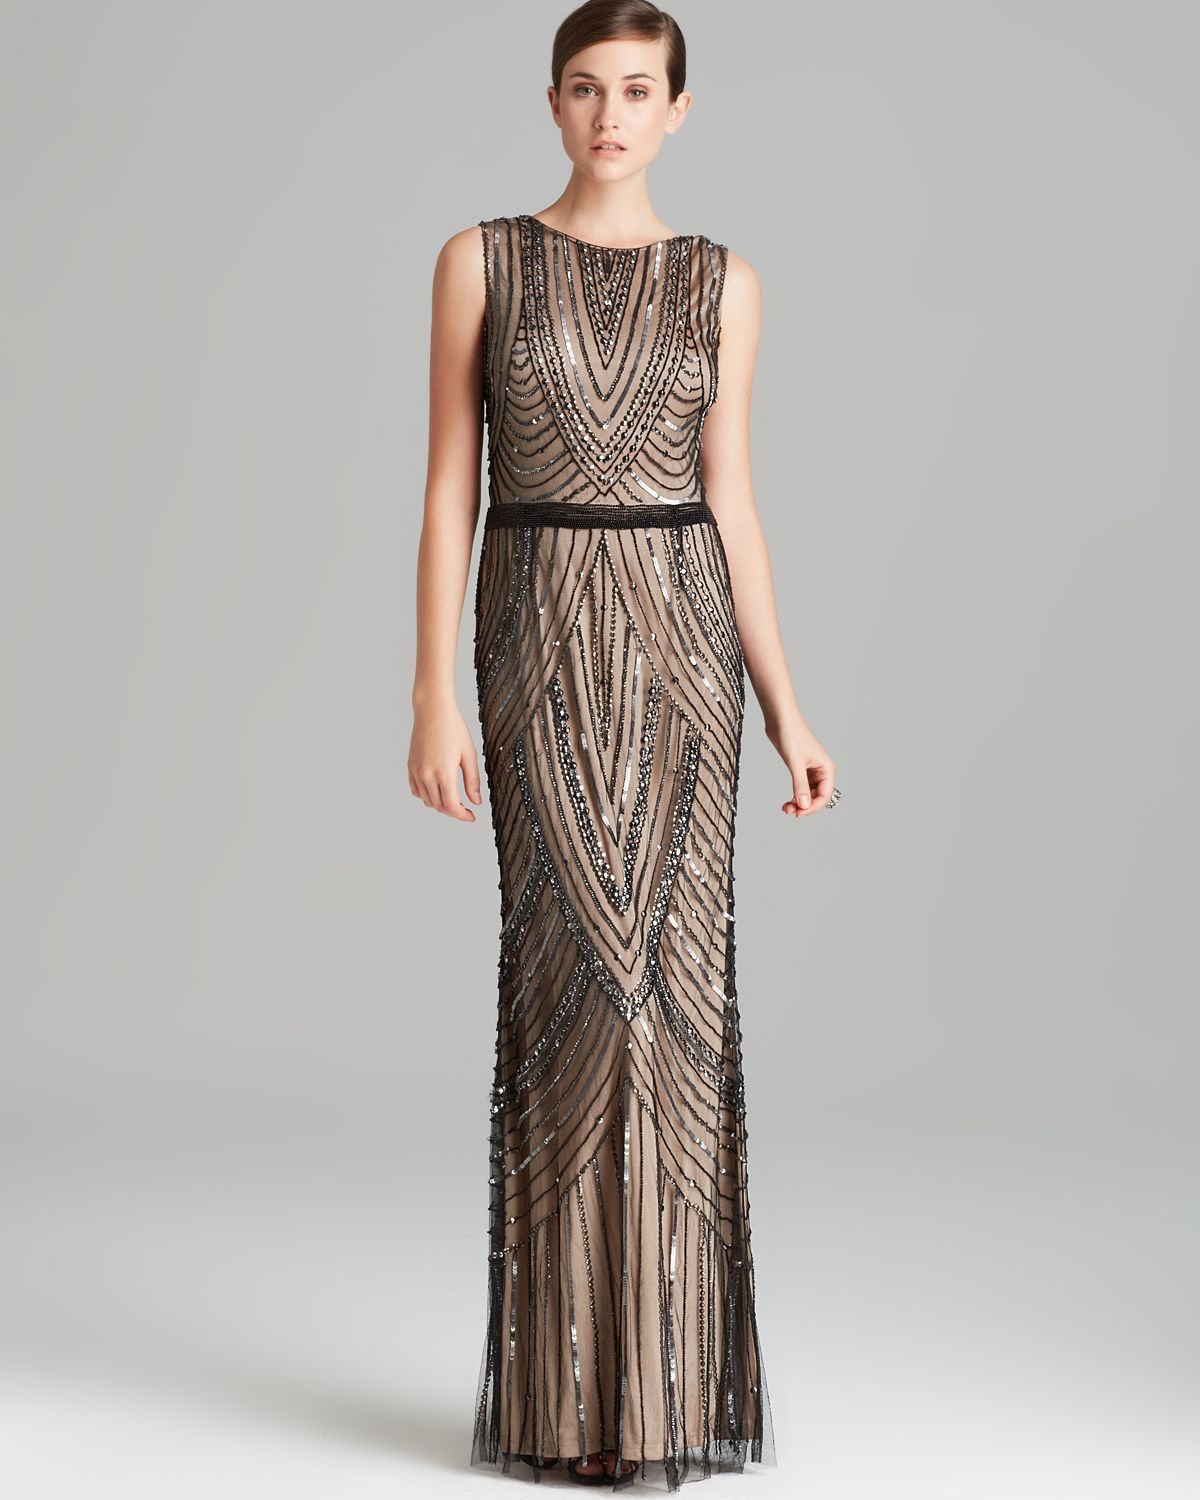 Lyst - Adrianna Papell Gown - Sleeveless Beaded in Natural